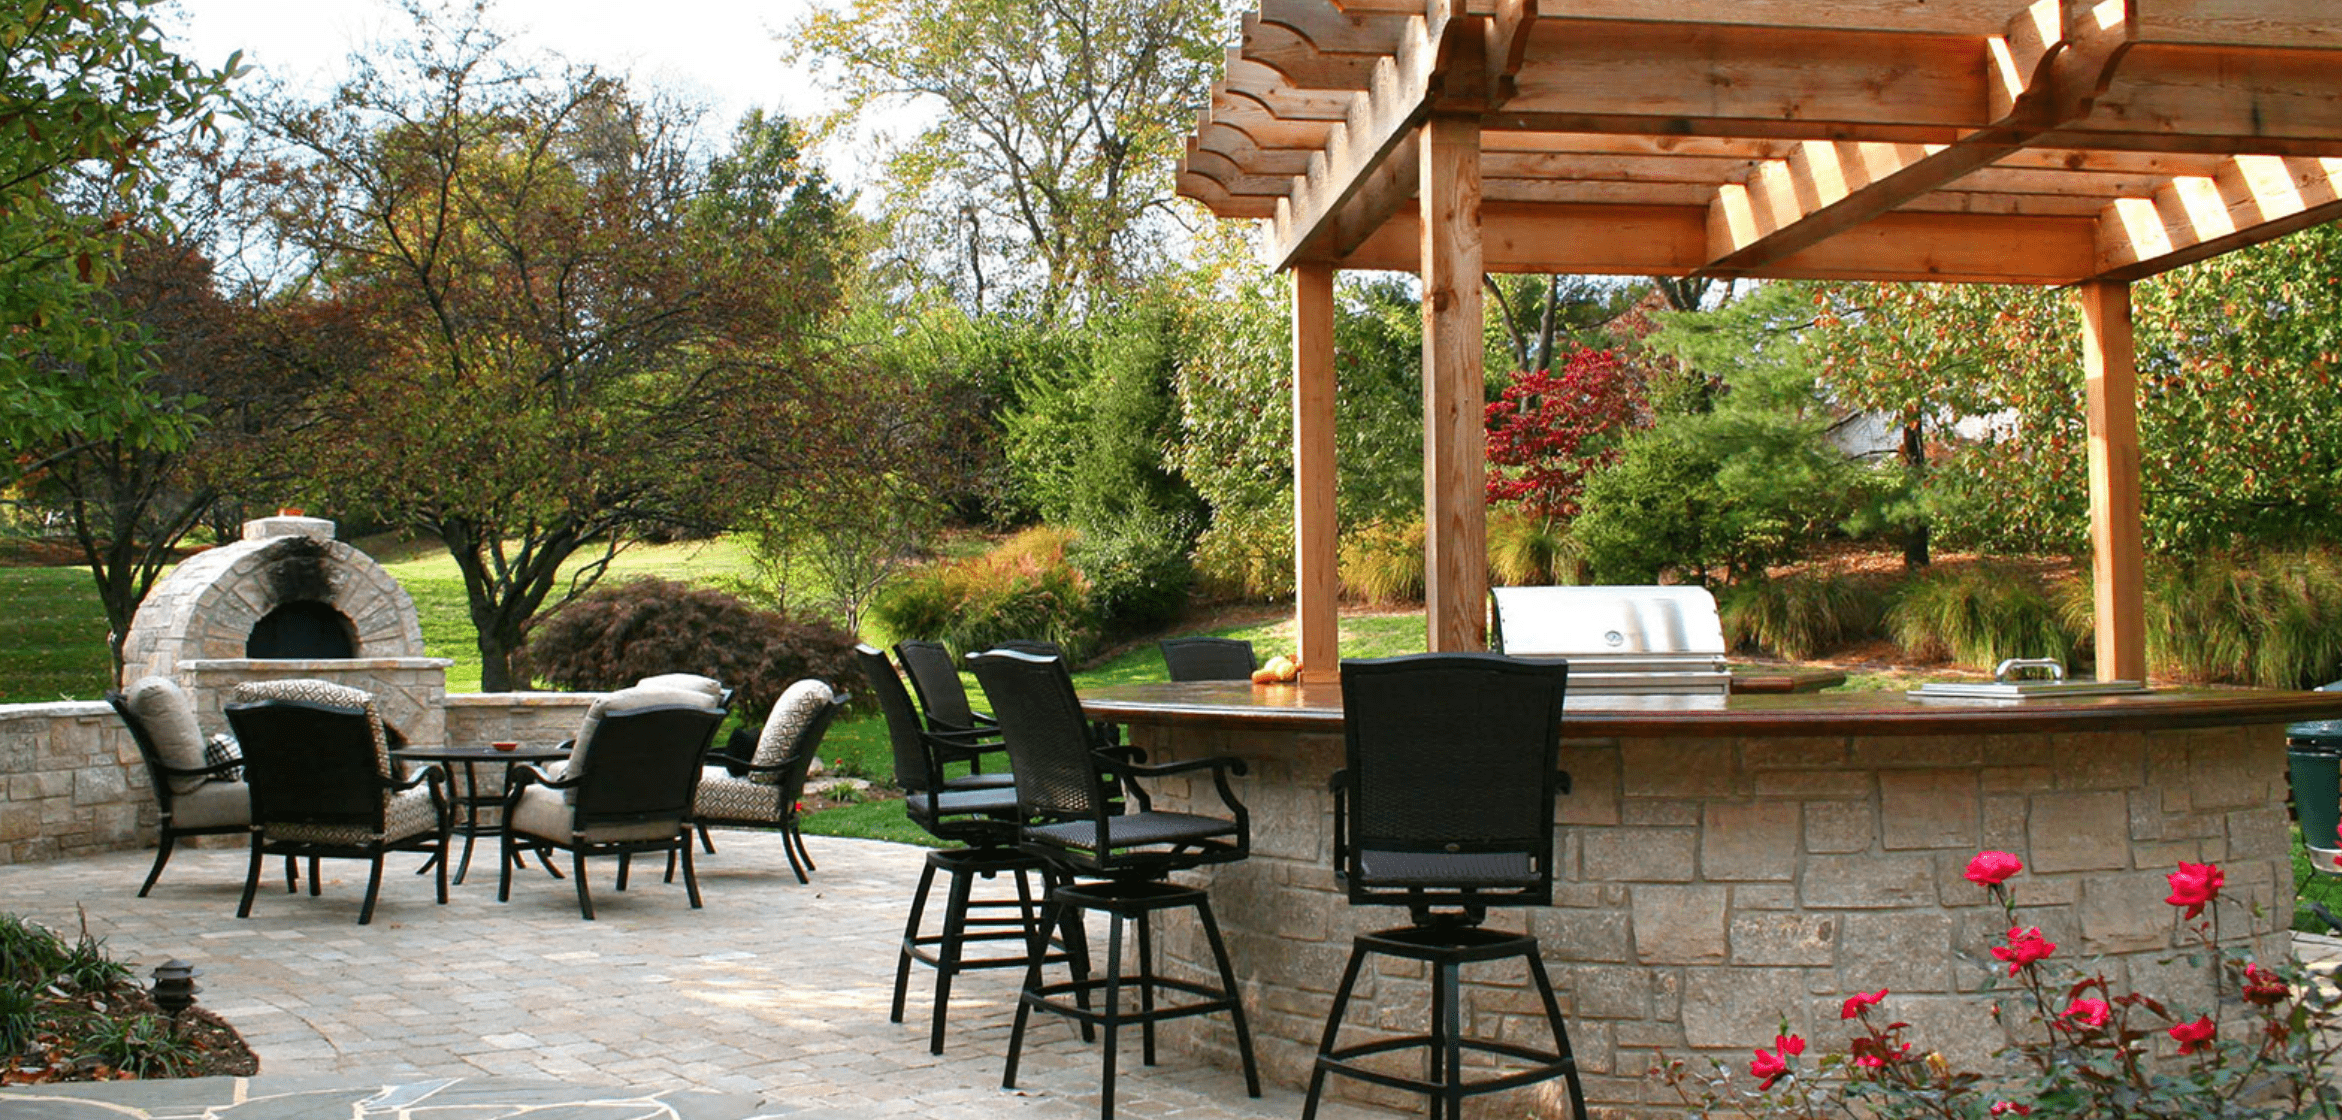 Patio with pergola over a masonry bar.